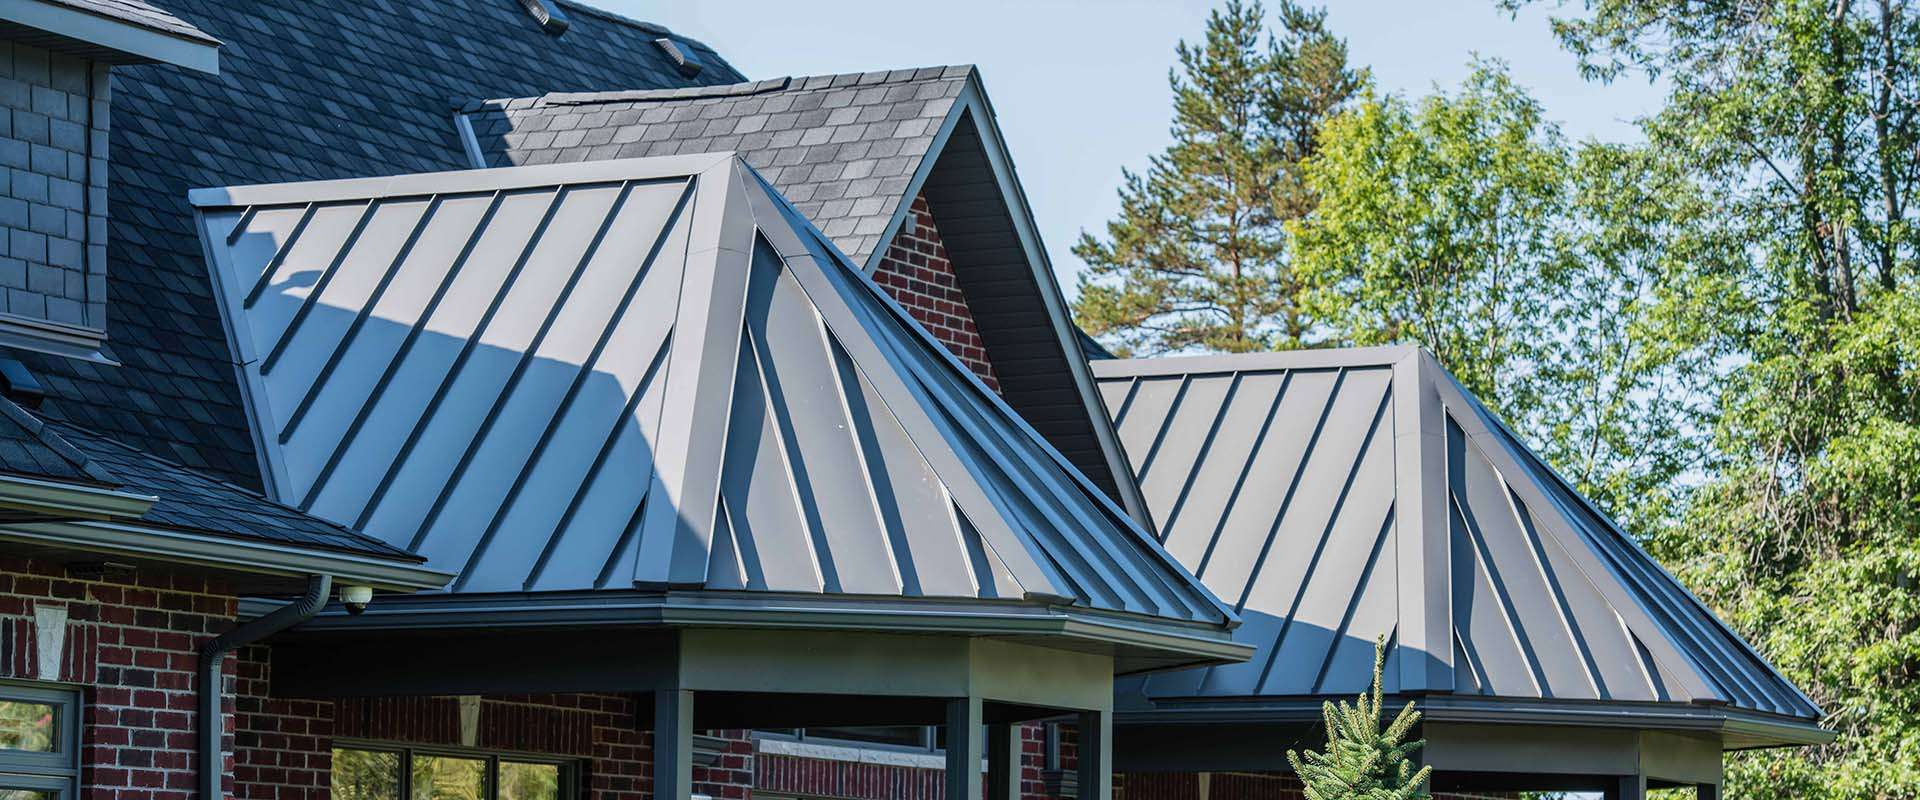 Home Barr S Roofing Siding Amp Sheet Metal Ltd